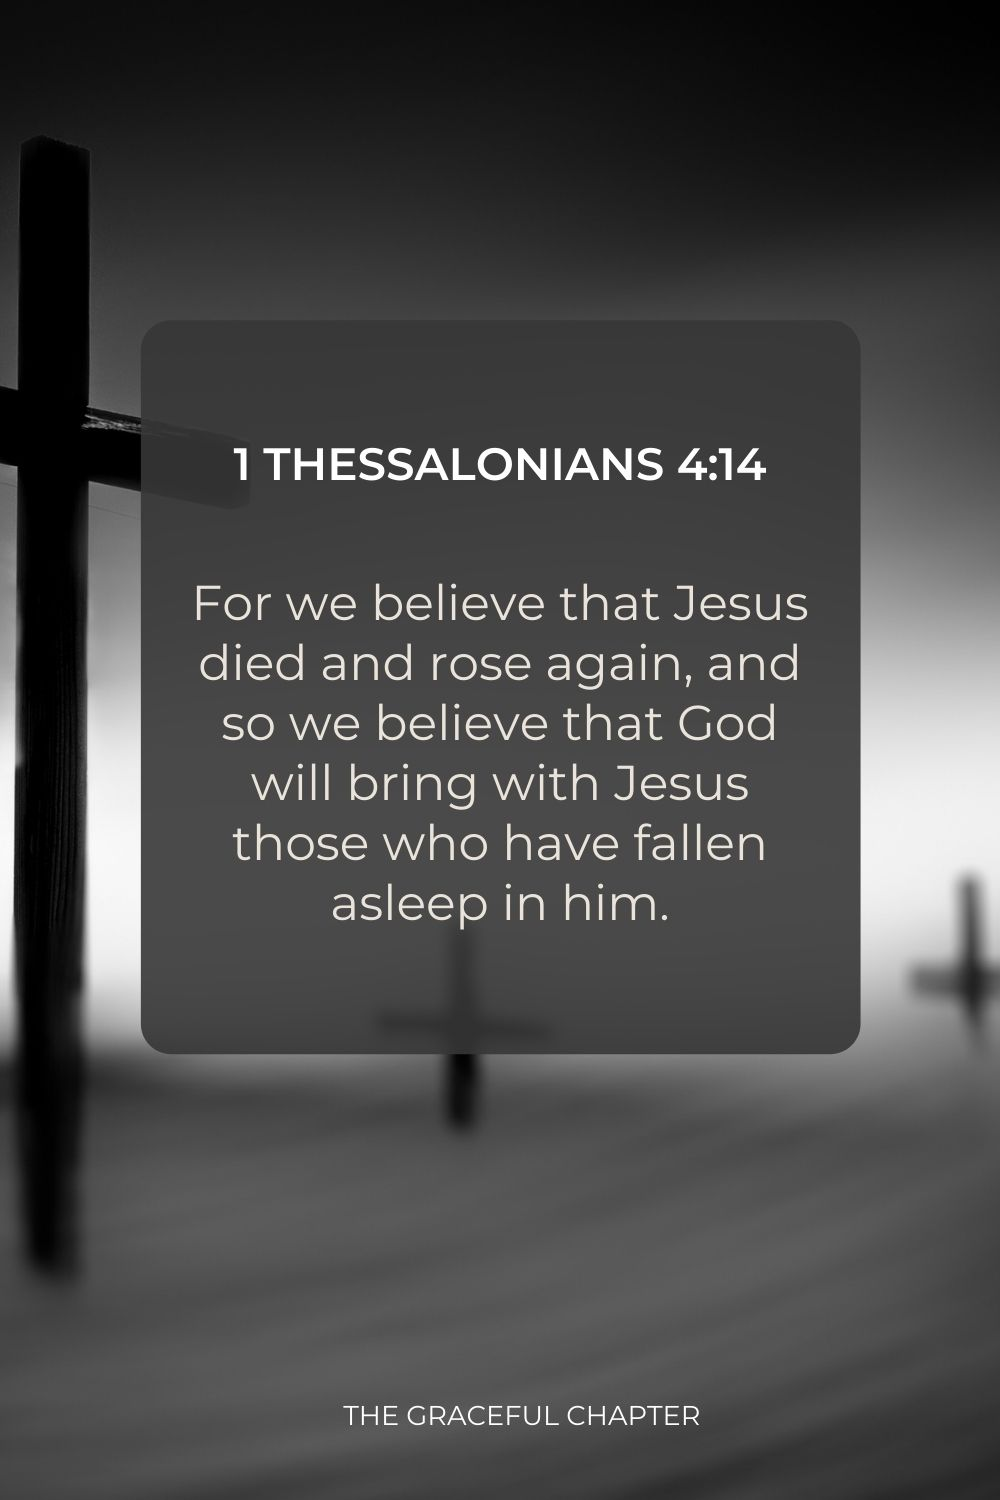 For we believe that Jesus died and rose again, and so we believe that God will bring with Jesus those who have fallen asleep in him. 1 Thessalonians 4:14